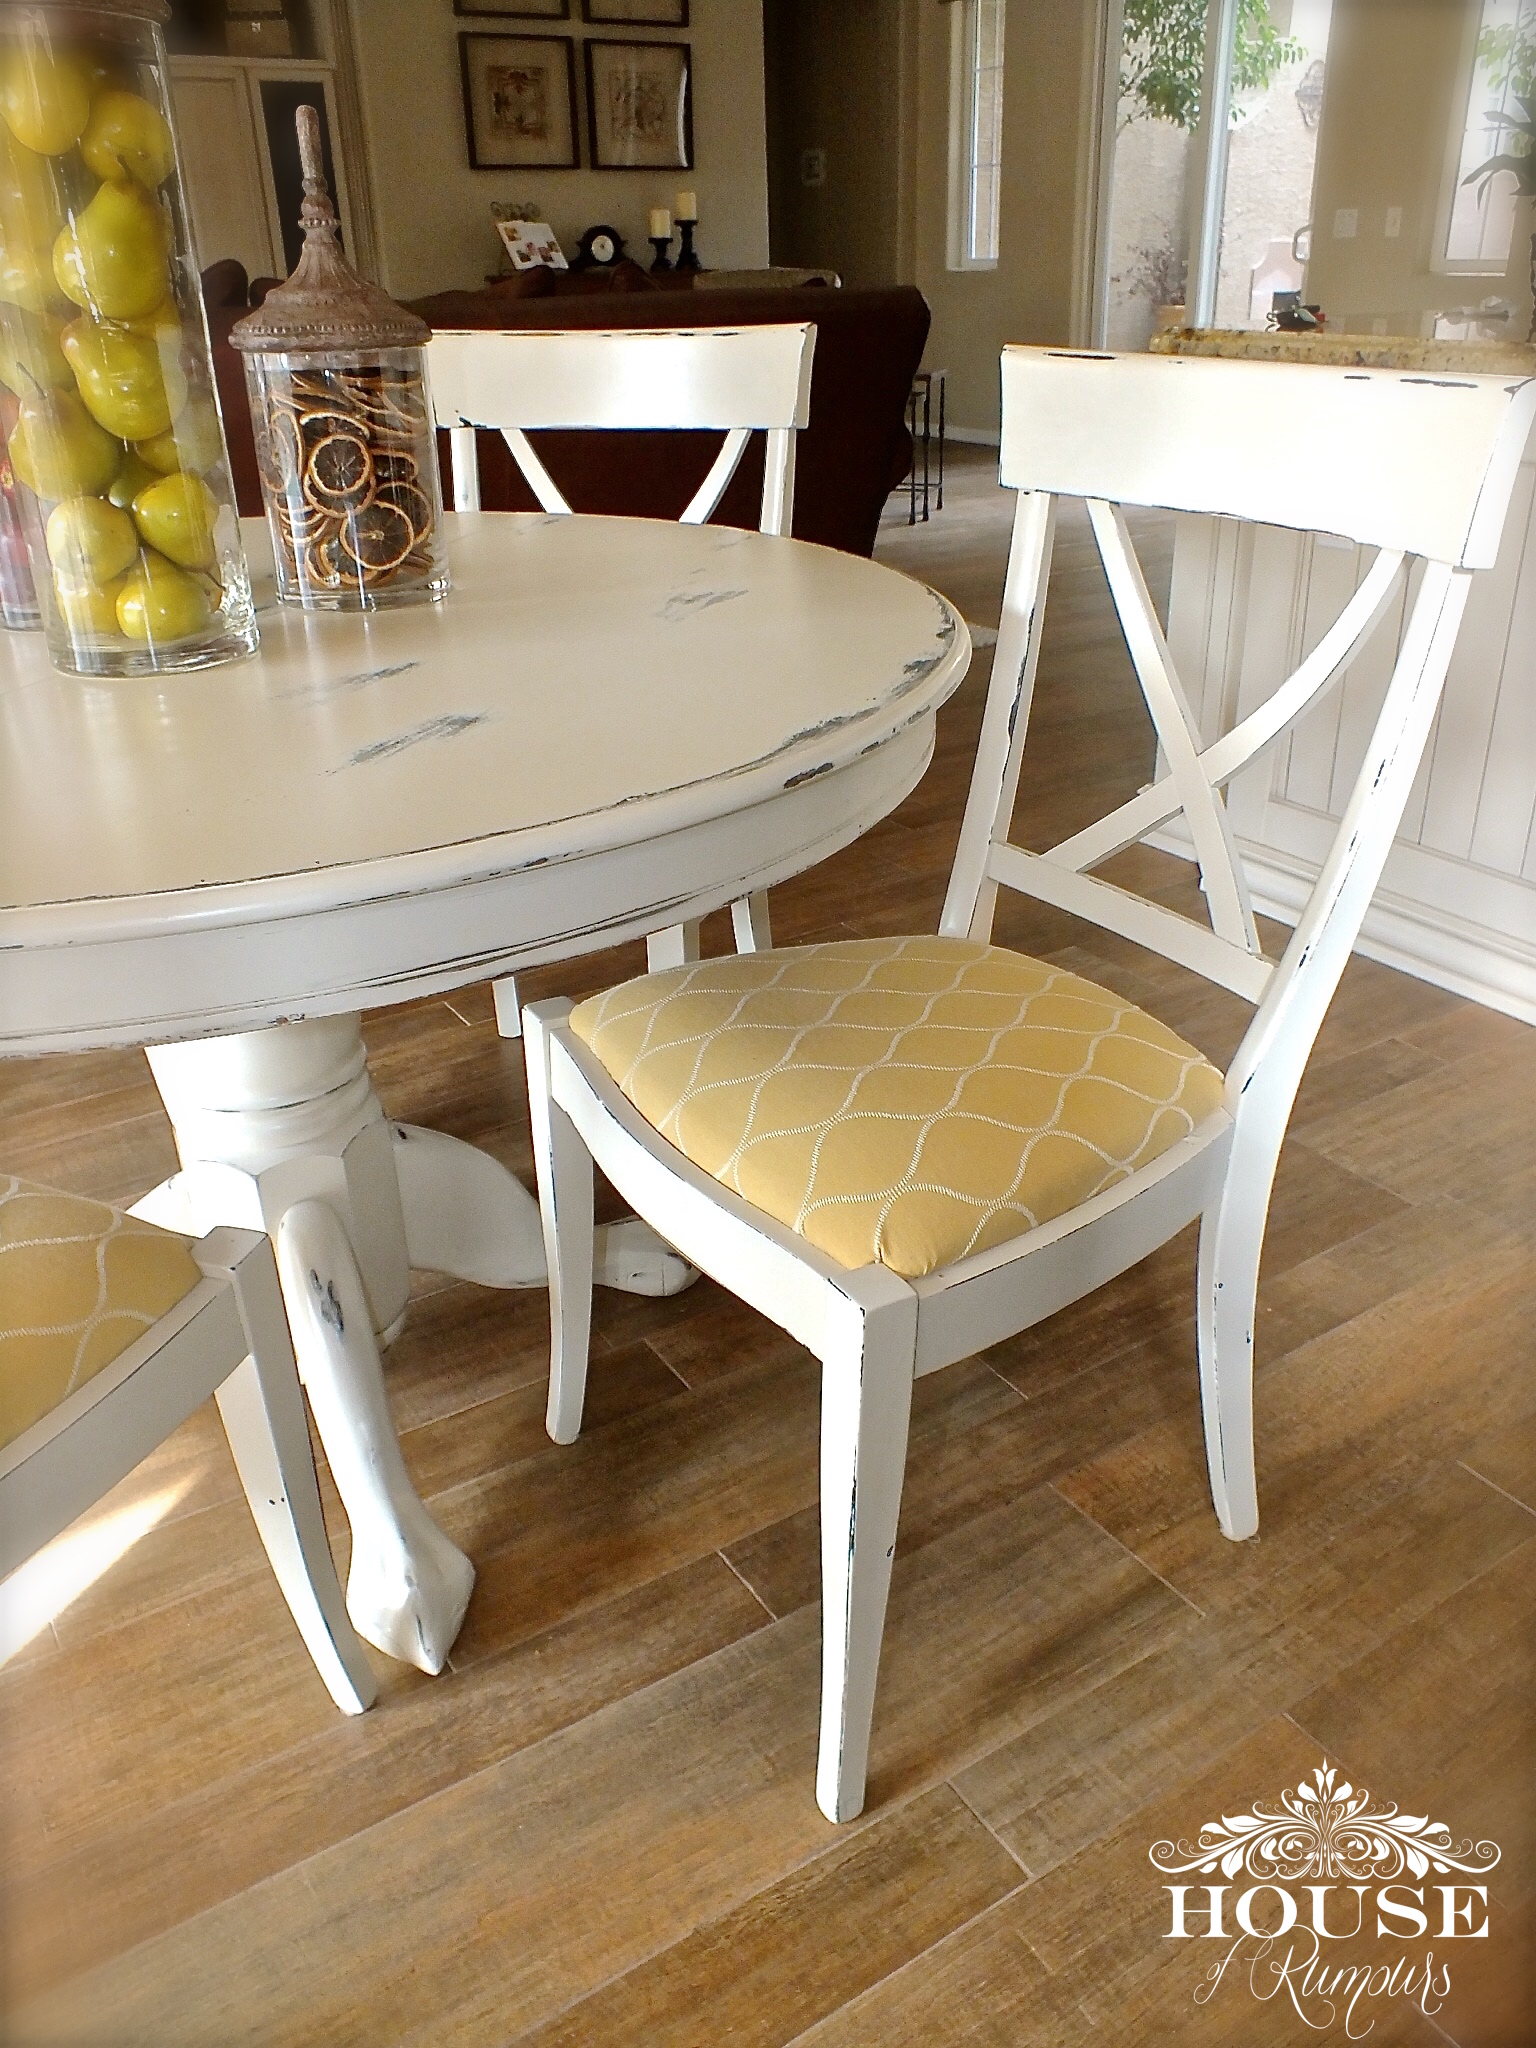 Pottery barn dining table white - Pottery Barn Dining Table White